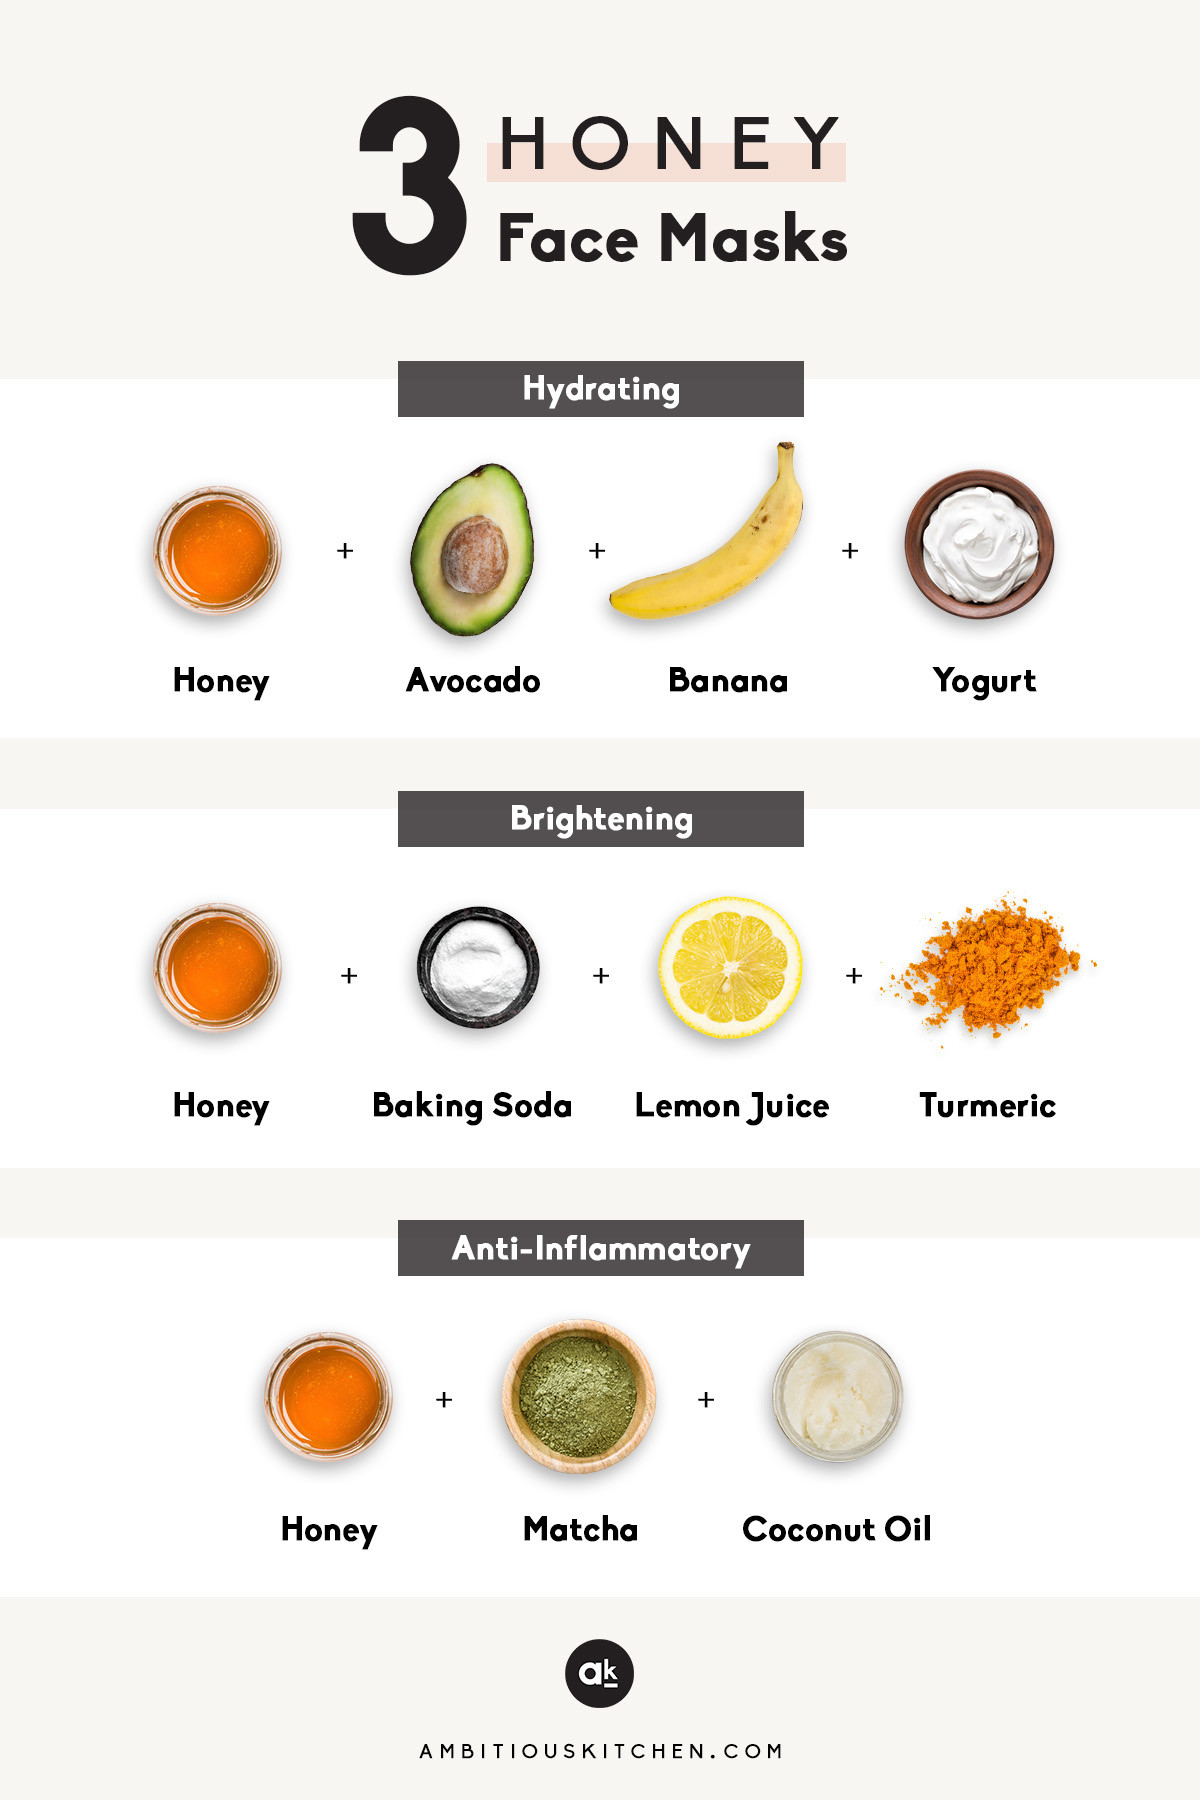 Best ideas about Honey Face Mask DIY . Save or Pin 3 DIY Honey Face Masks video Now.